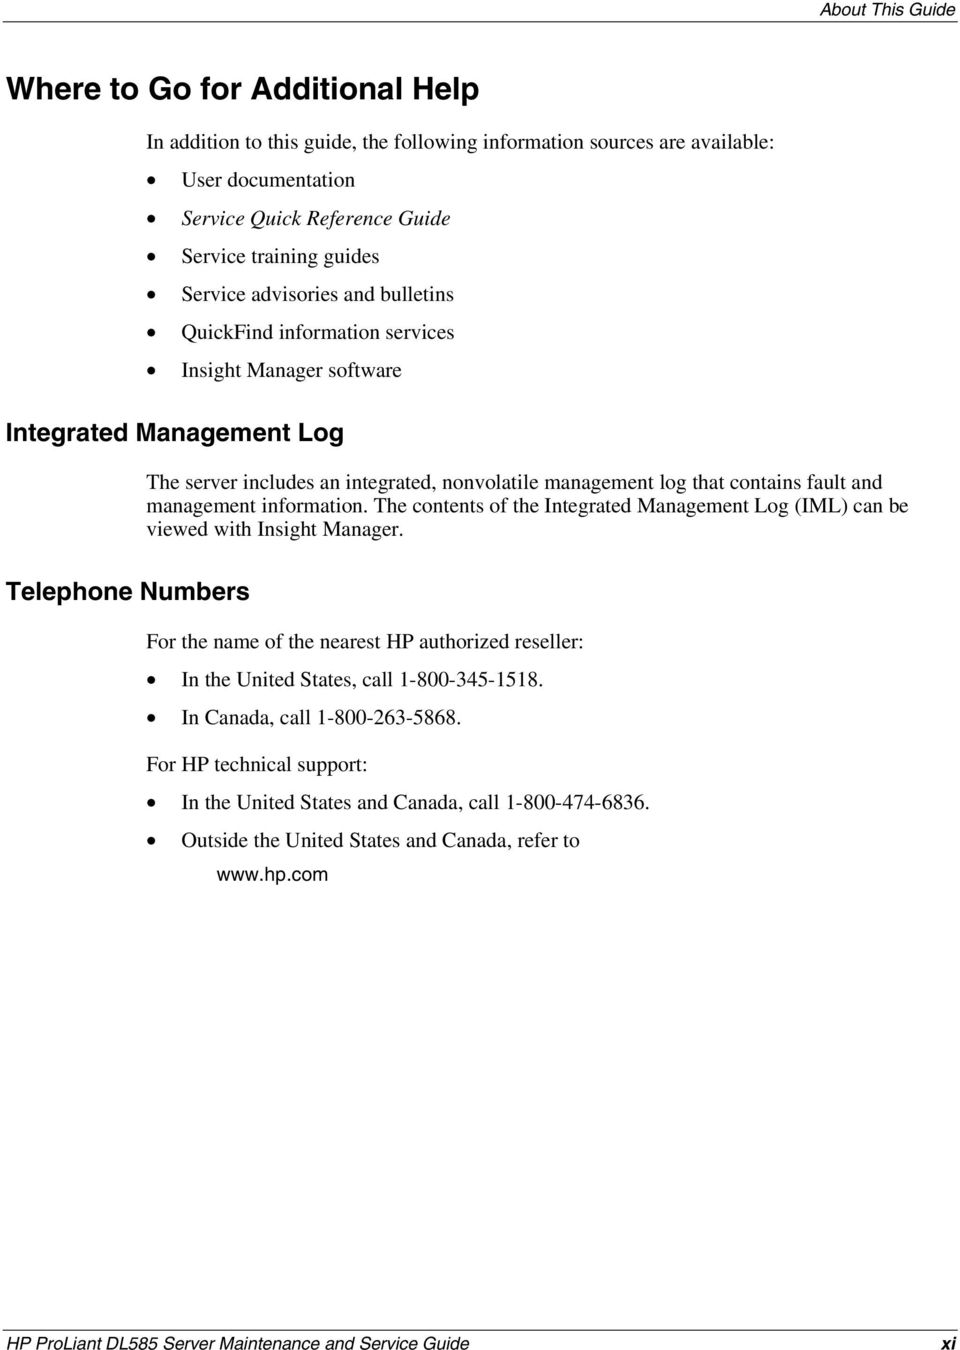 ... HP ProLiant DL585 Server Maintenance and Service Guide xi. and  management information. The contents of the Integrated Management Log (IML)  can be